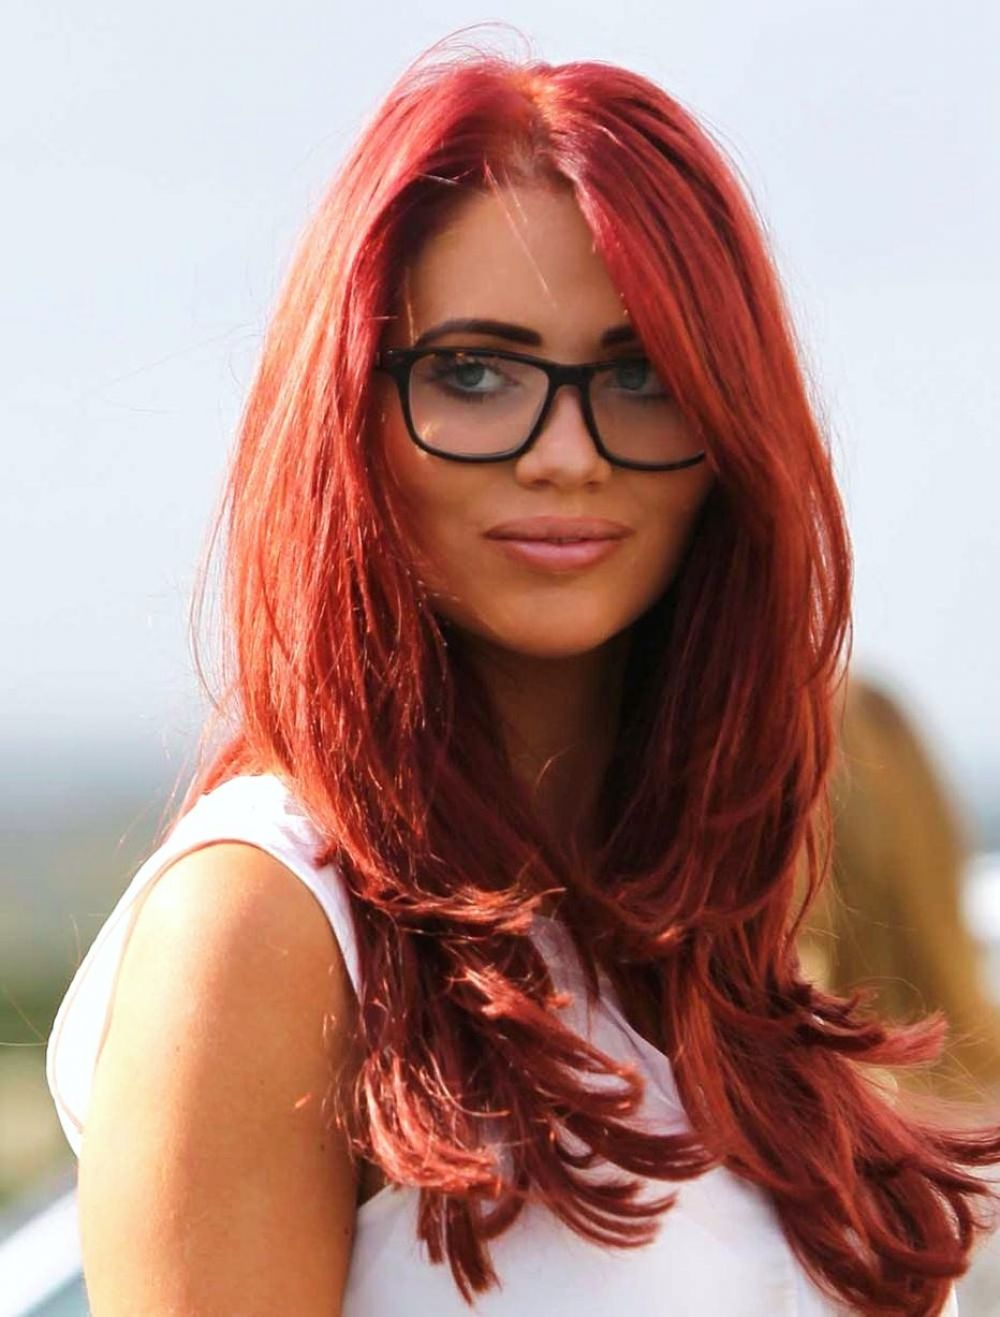 AMY CHILDS Out and About in Essex 1710